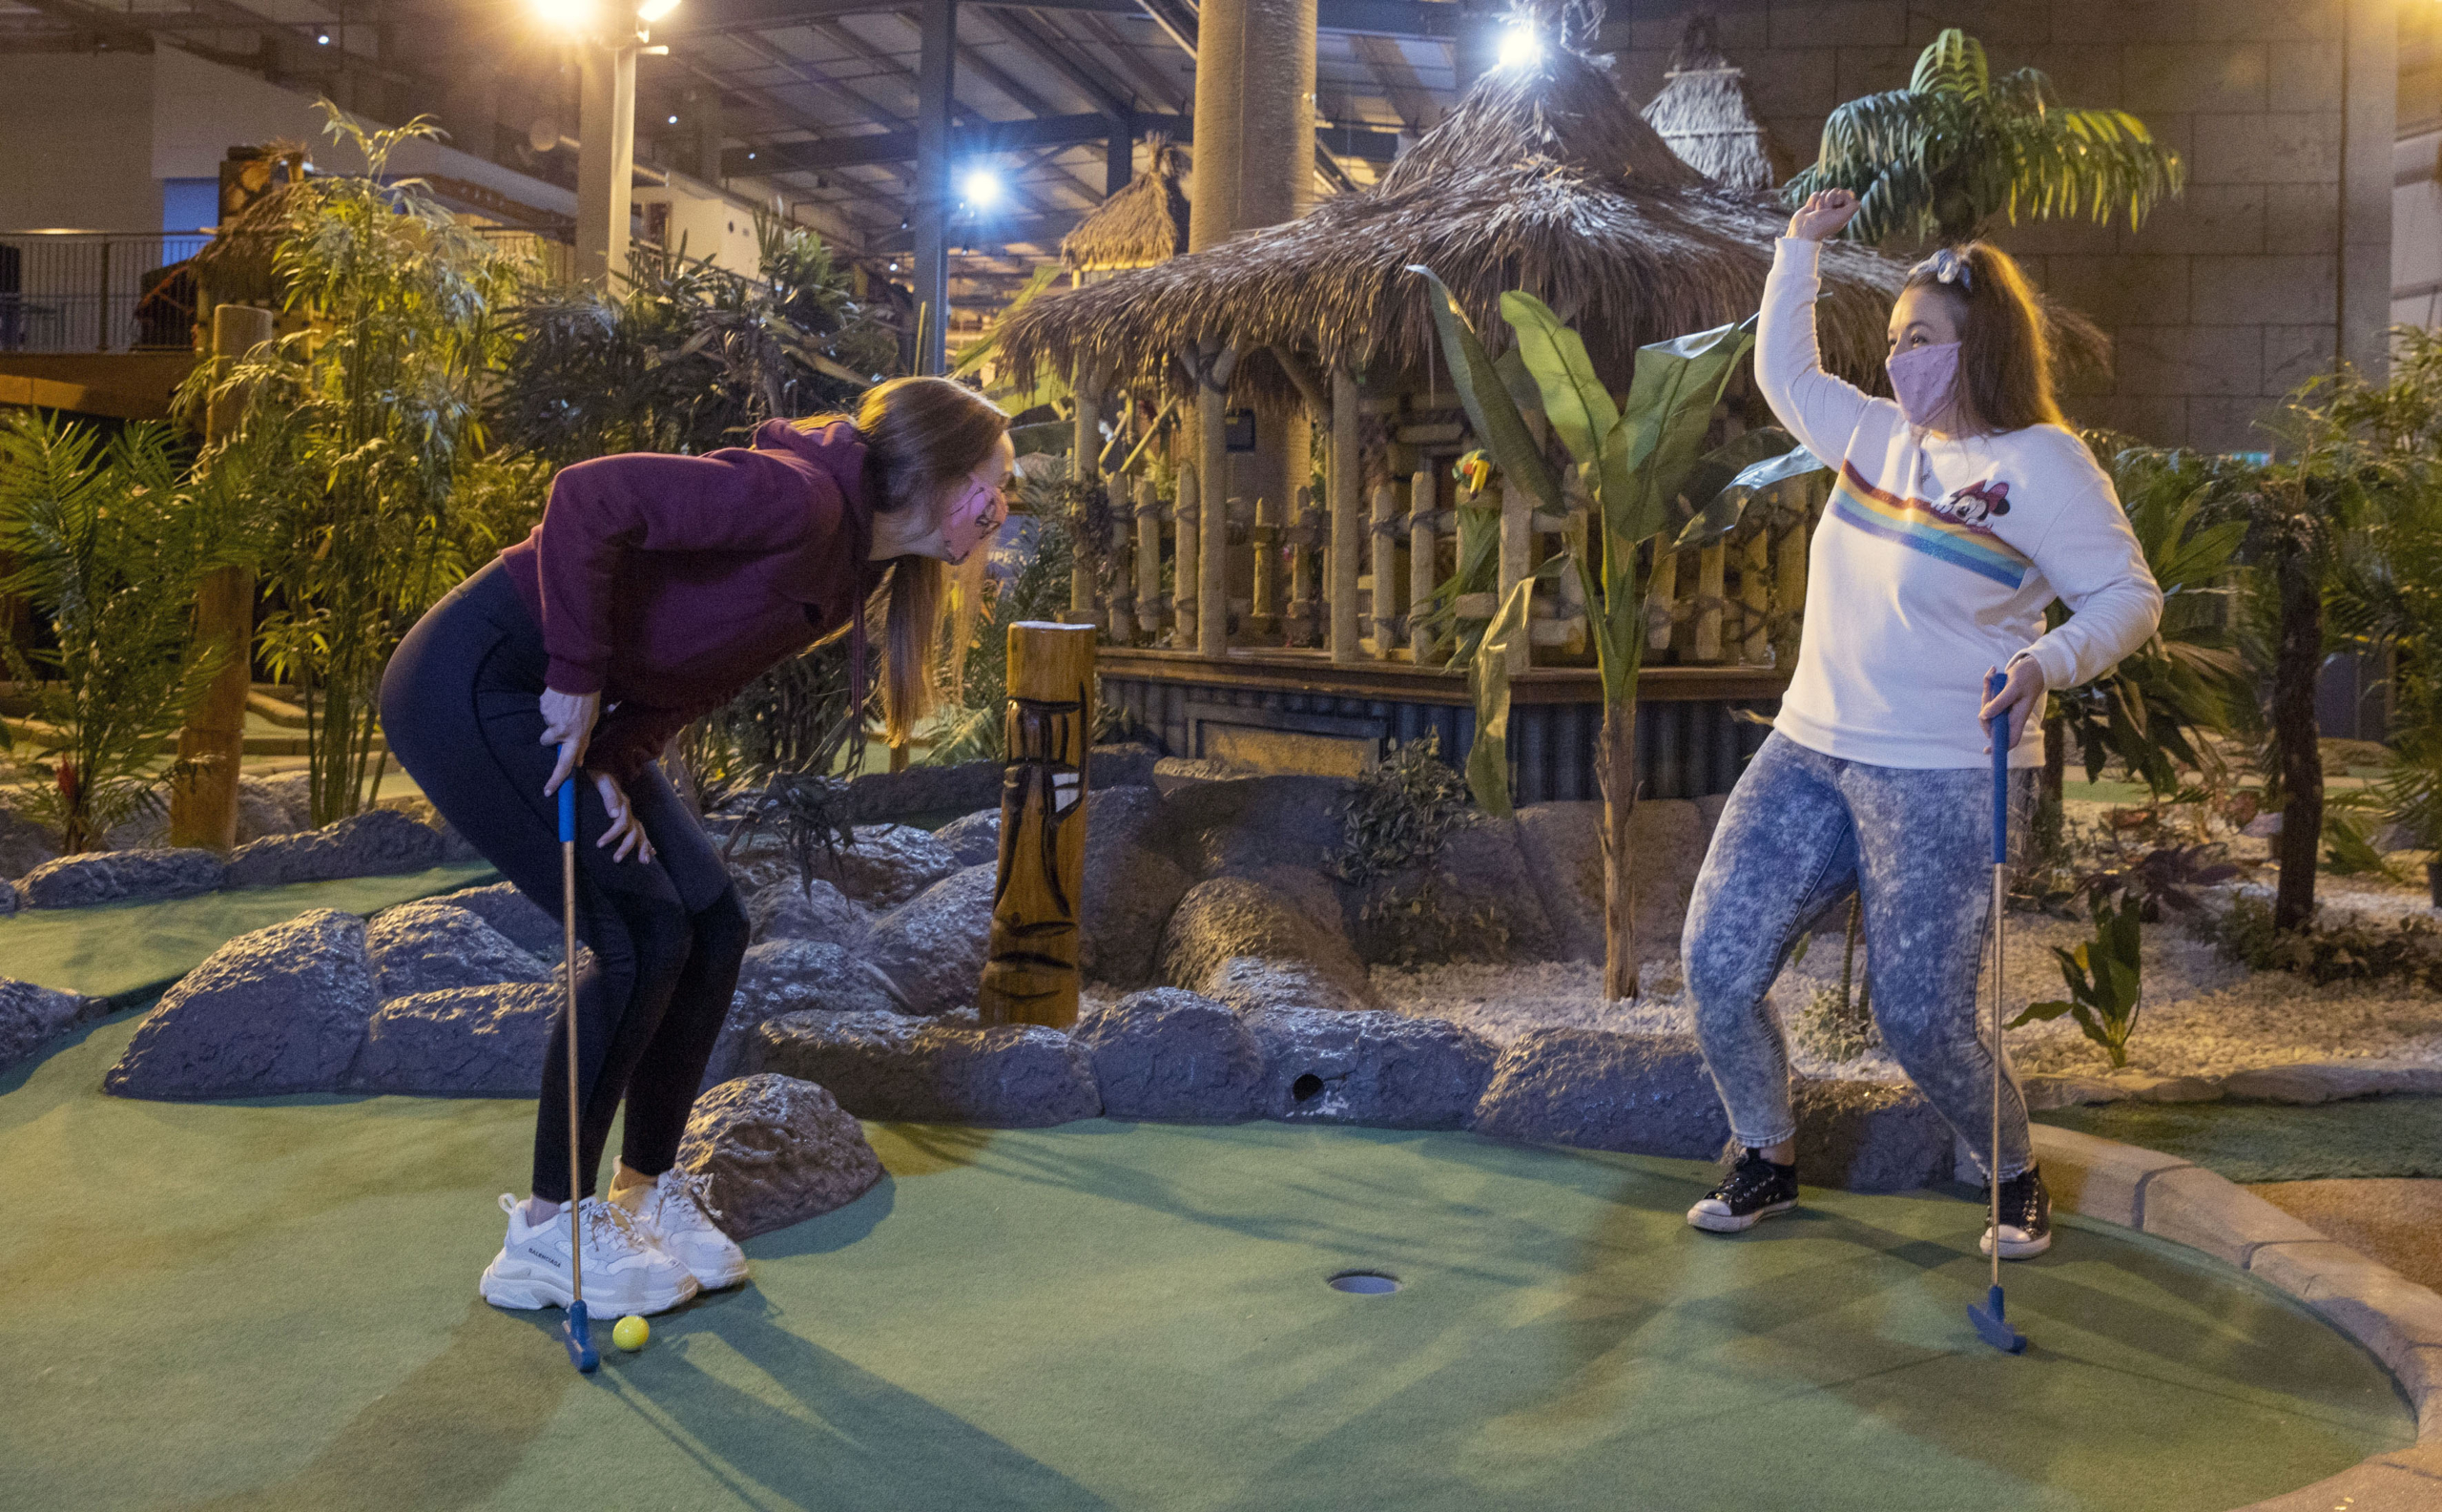 Jessica Cushley, 30, with friend 31-year-old Victoria Smith, both from Erskine Renfrewshire enjoy a game of adventure golf in Soar at intu Braehead.